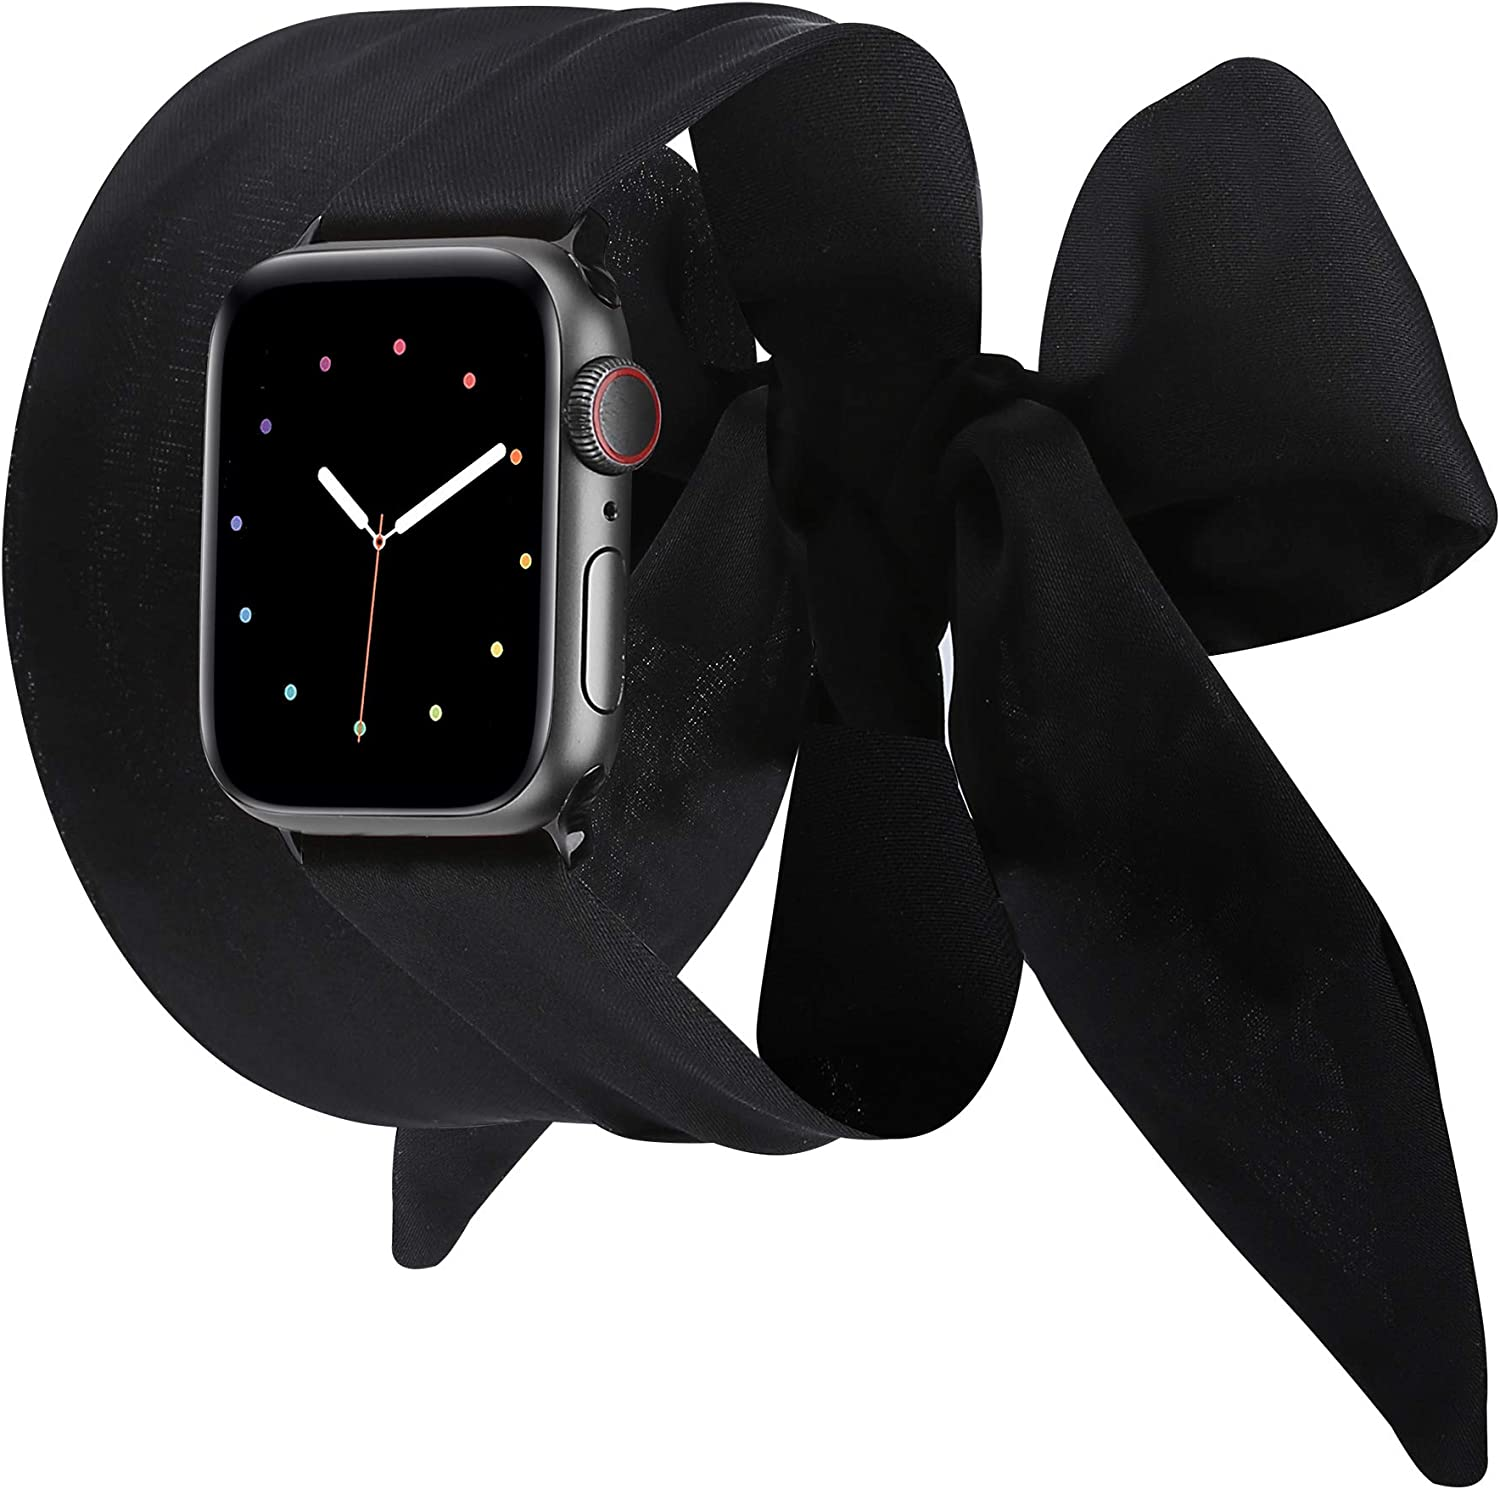 Wearlizer Compatible with Apple Watch Bands Scarf 38mm 40mm for iWatch Band Women Girls Fashion Scarf Band Replacement Wrist Strap for Apple Watch SE Series 6 5 4 3 2 1 - Black